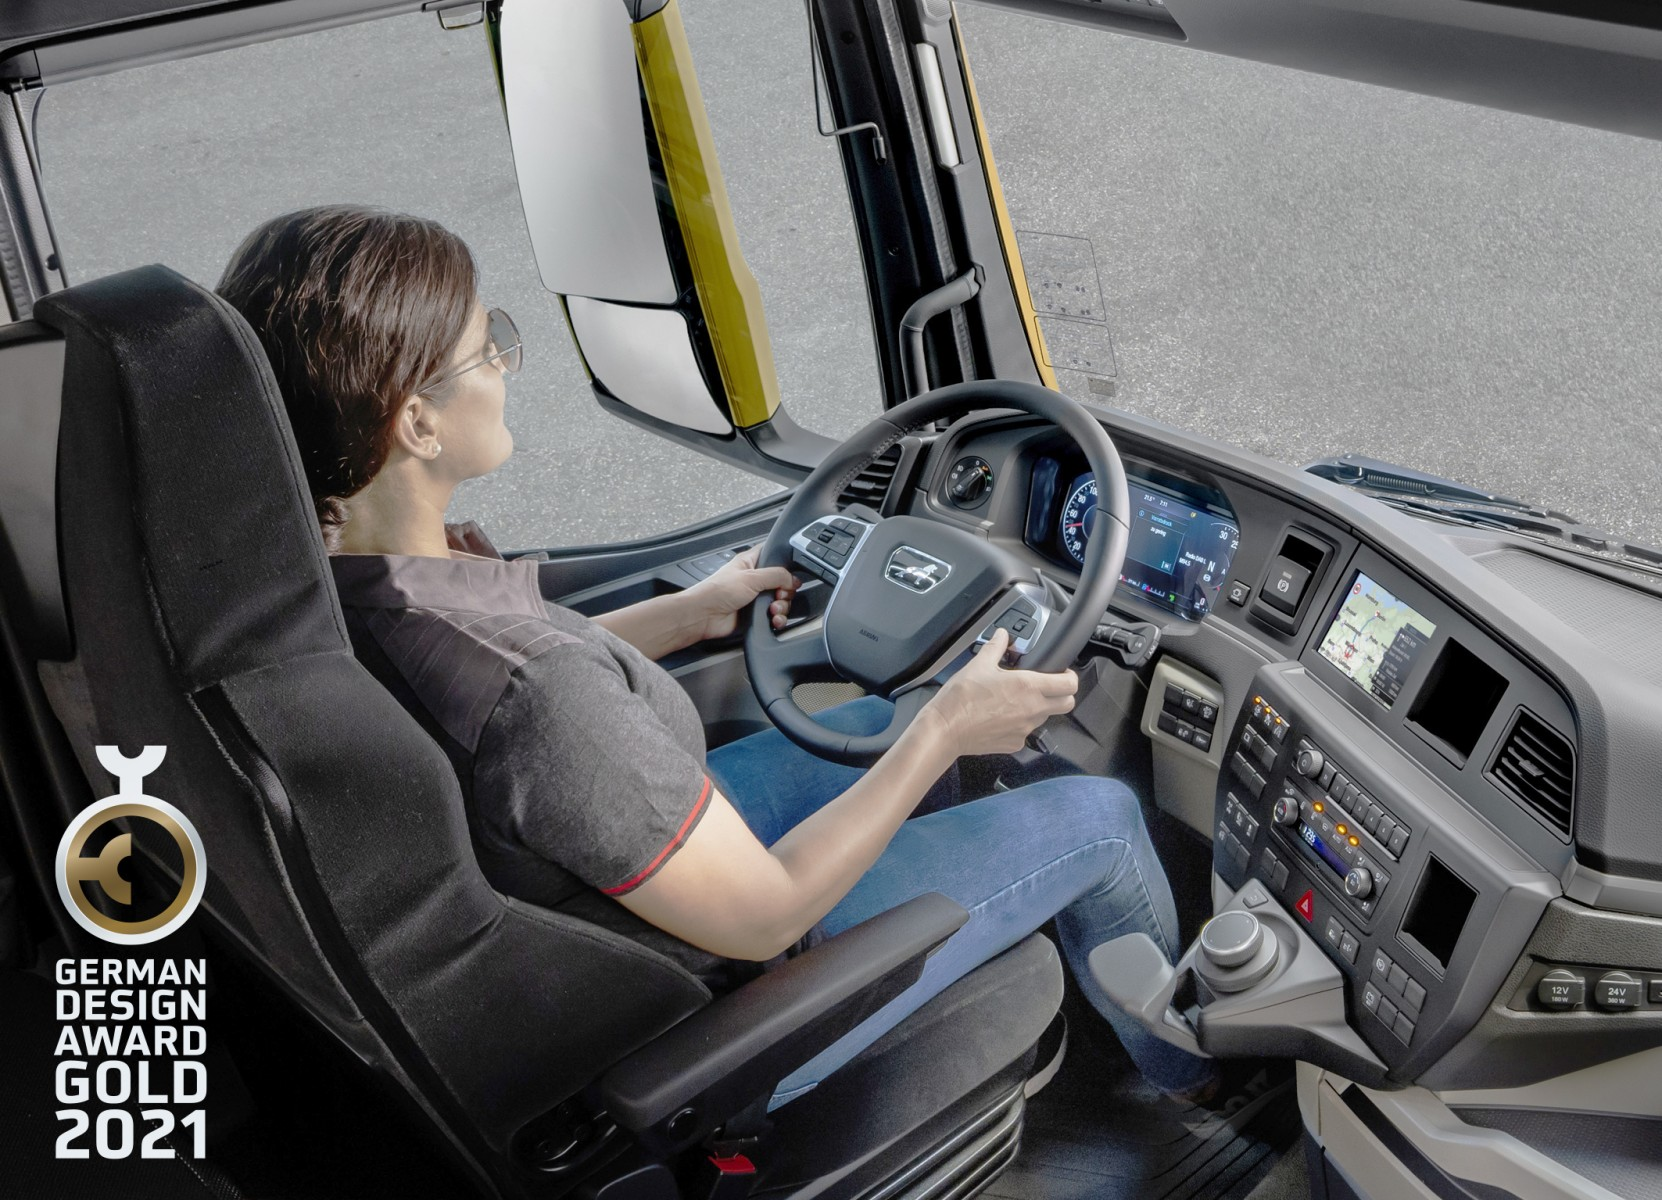 P_Truck_MAN_TGX_ IOT__German_Design_Award